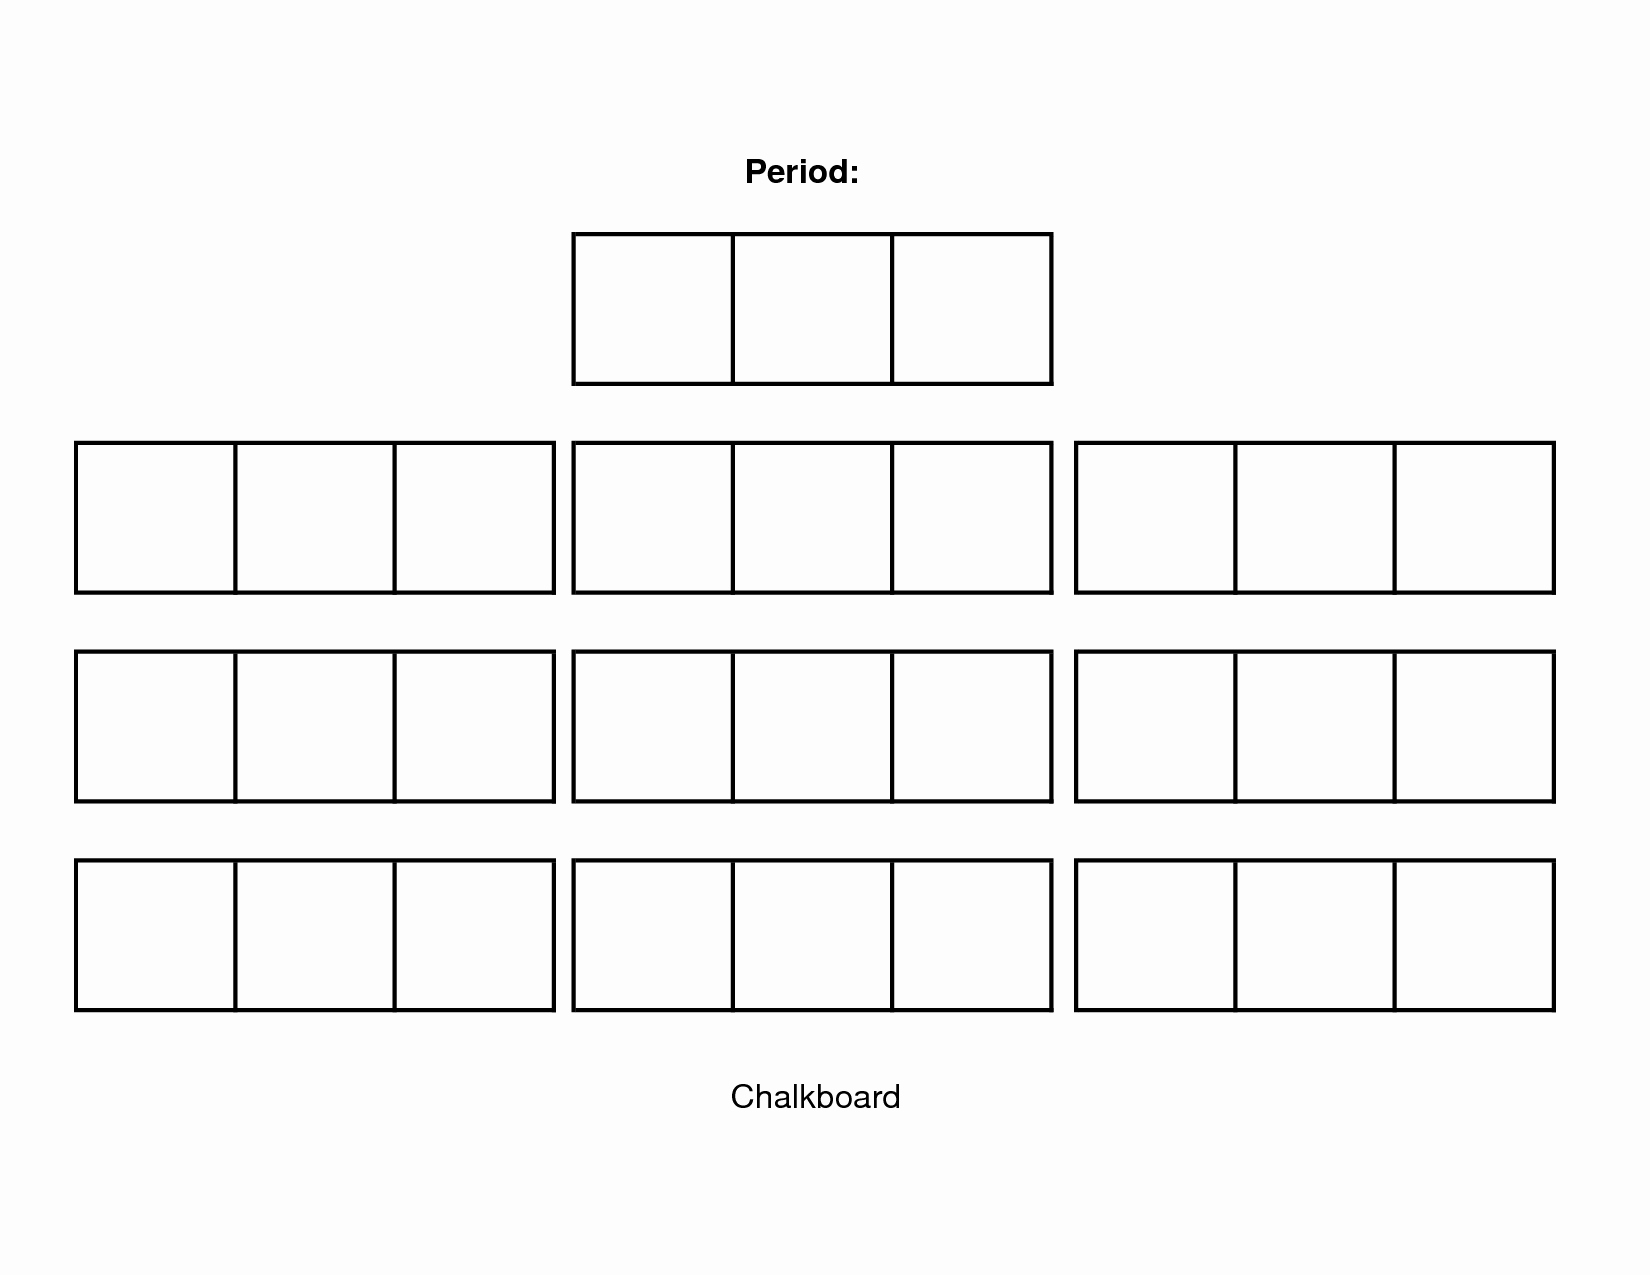 Choir Seating Chart Template Awesome Free Classroom Seating Chart Maker Portablegasgrillweber